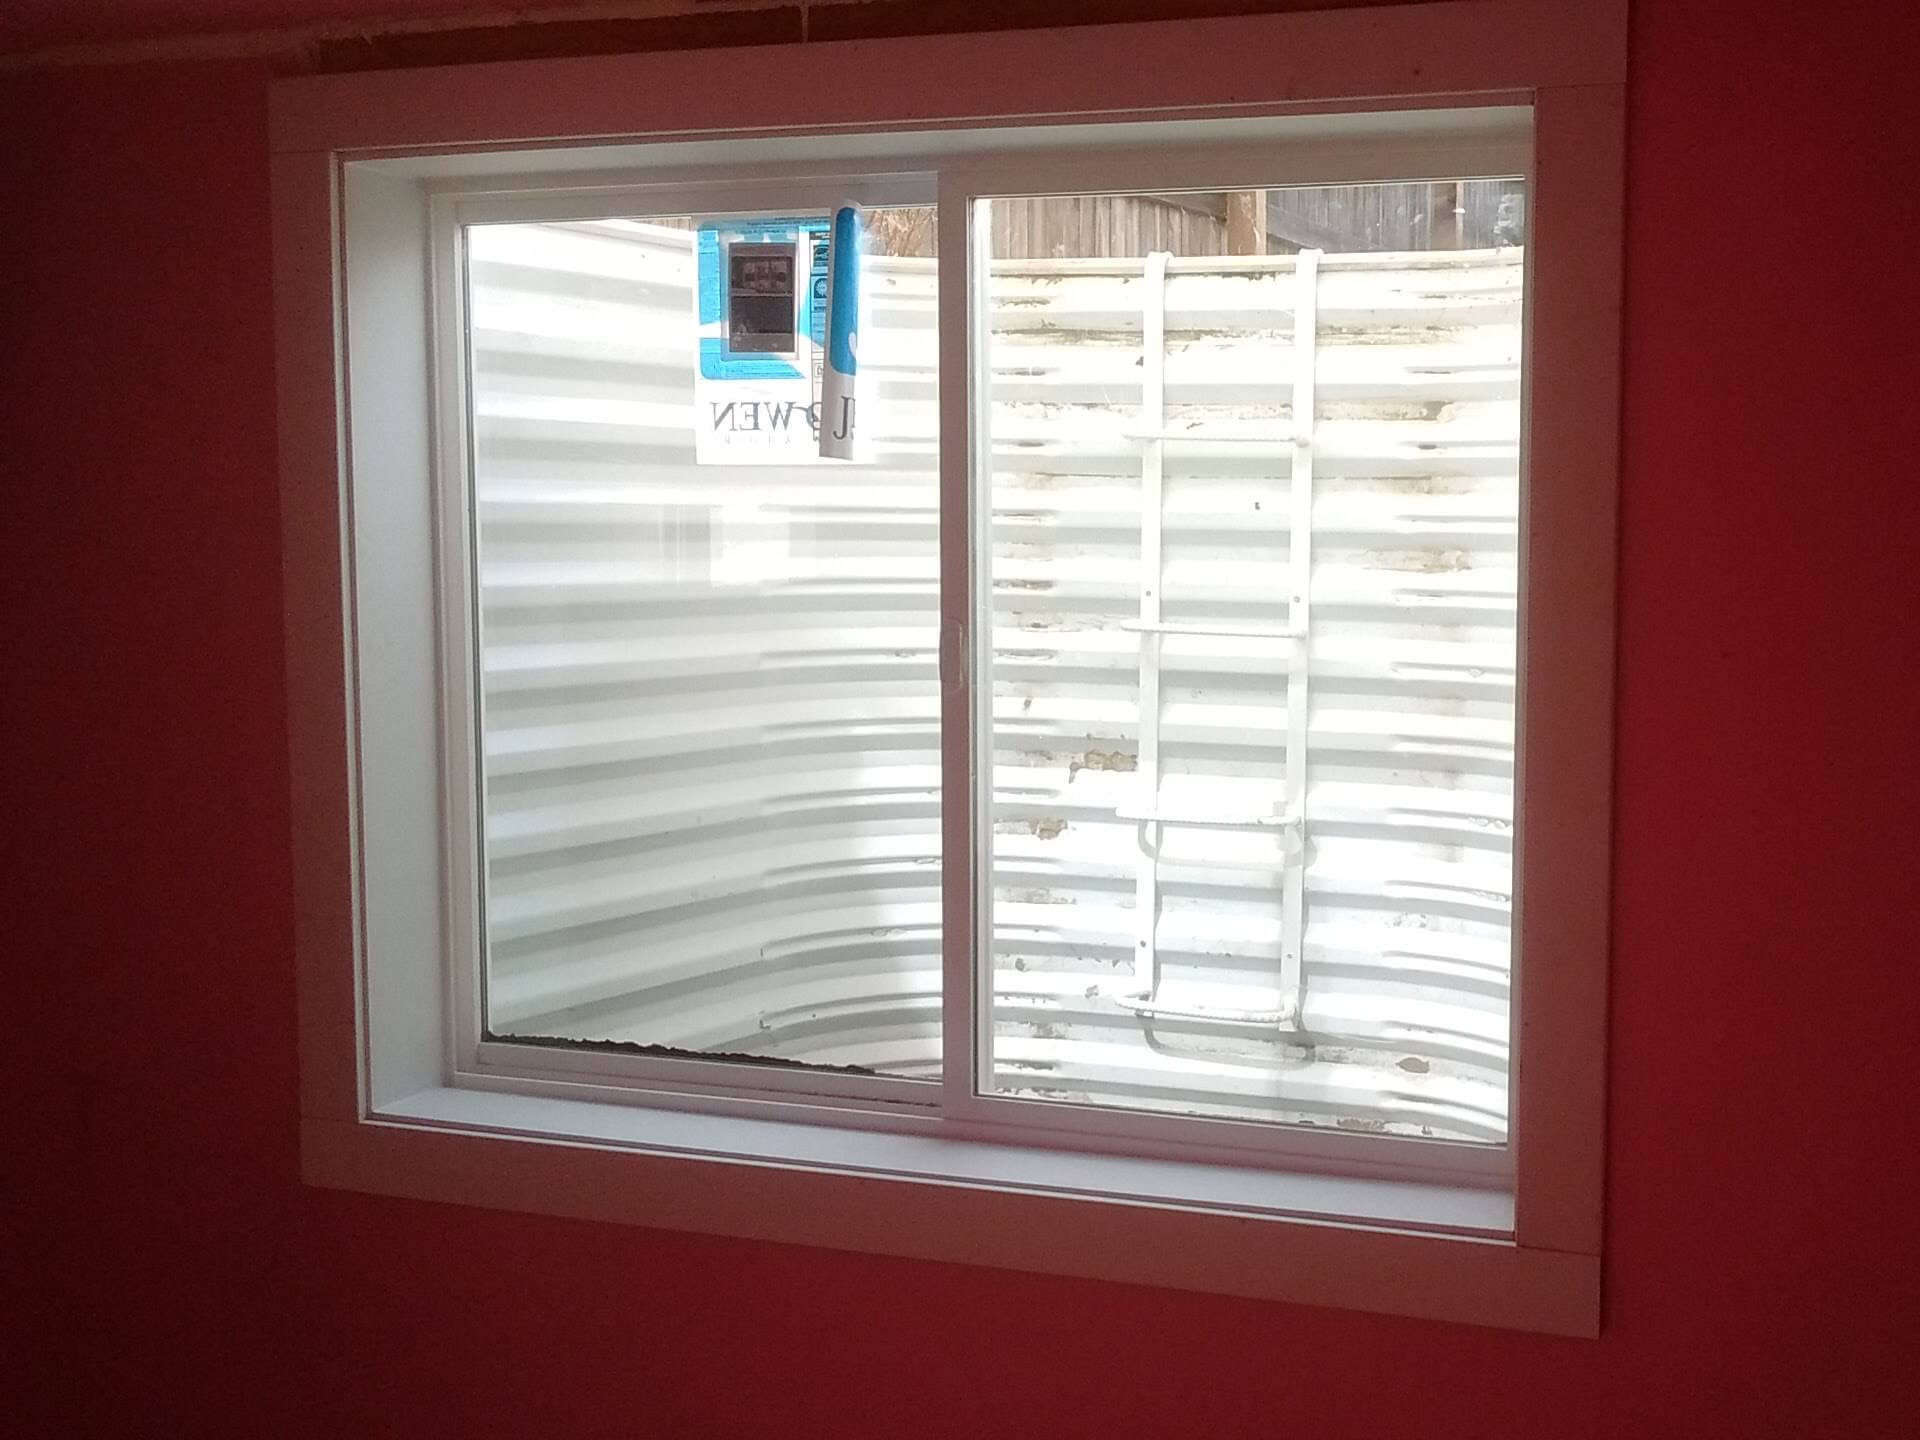 10 after new basement window installed copy.jpg